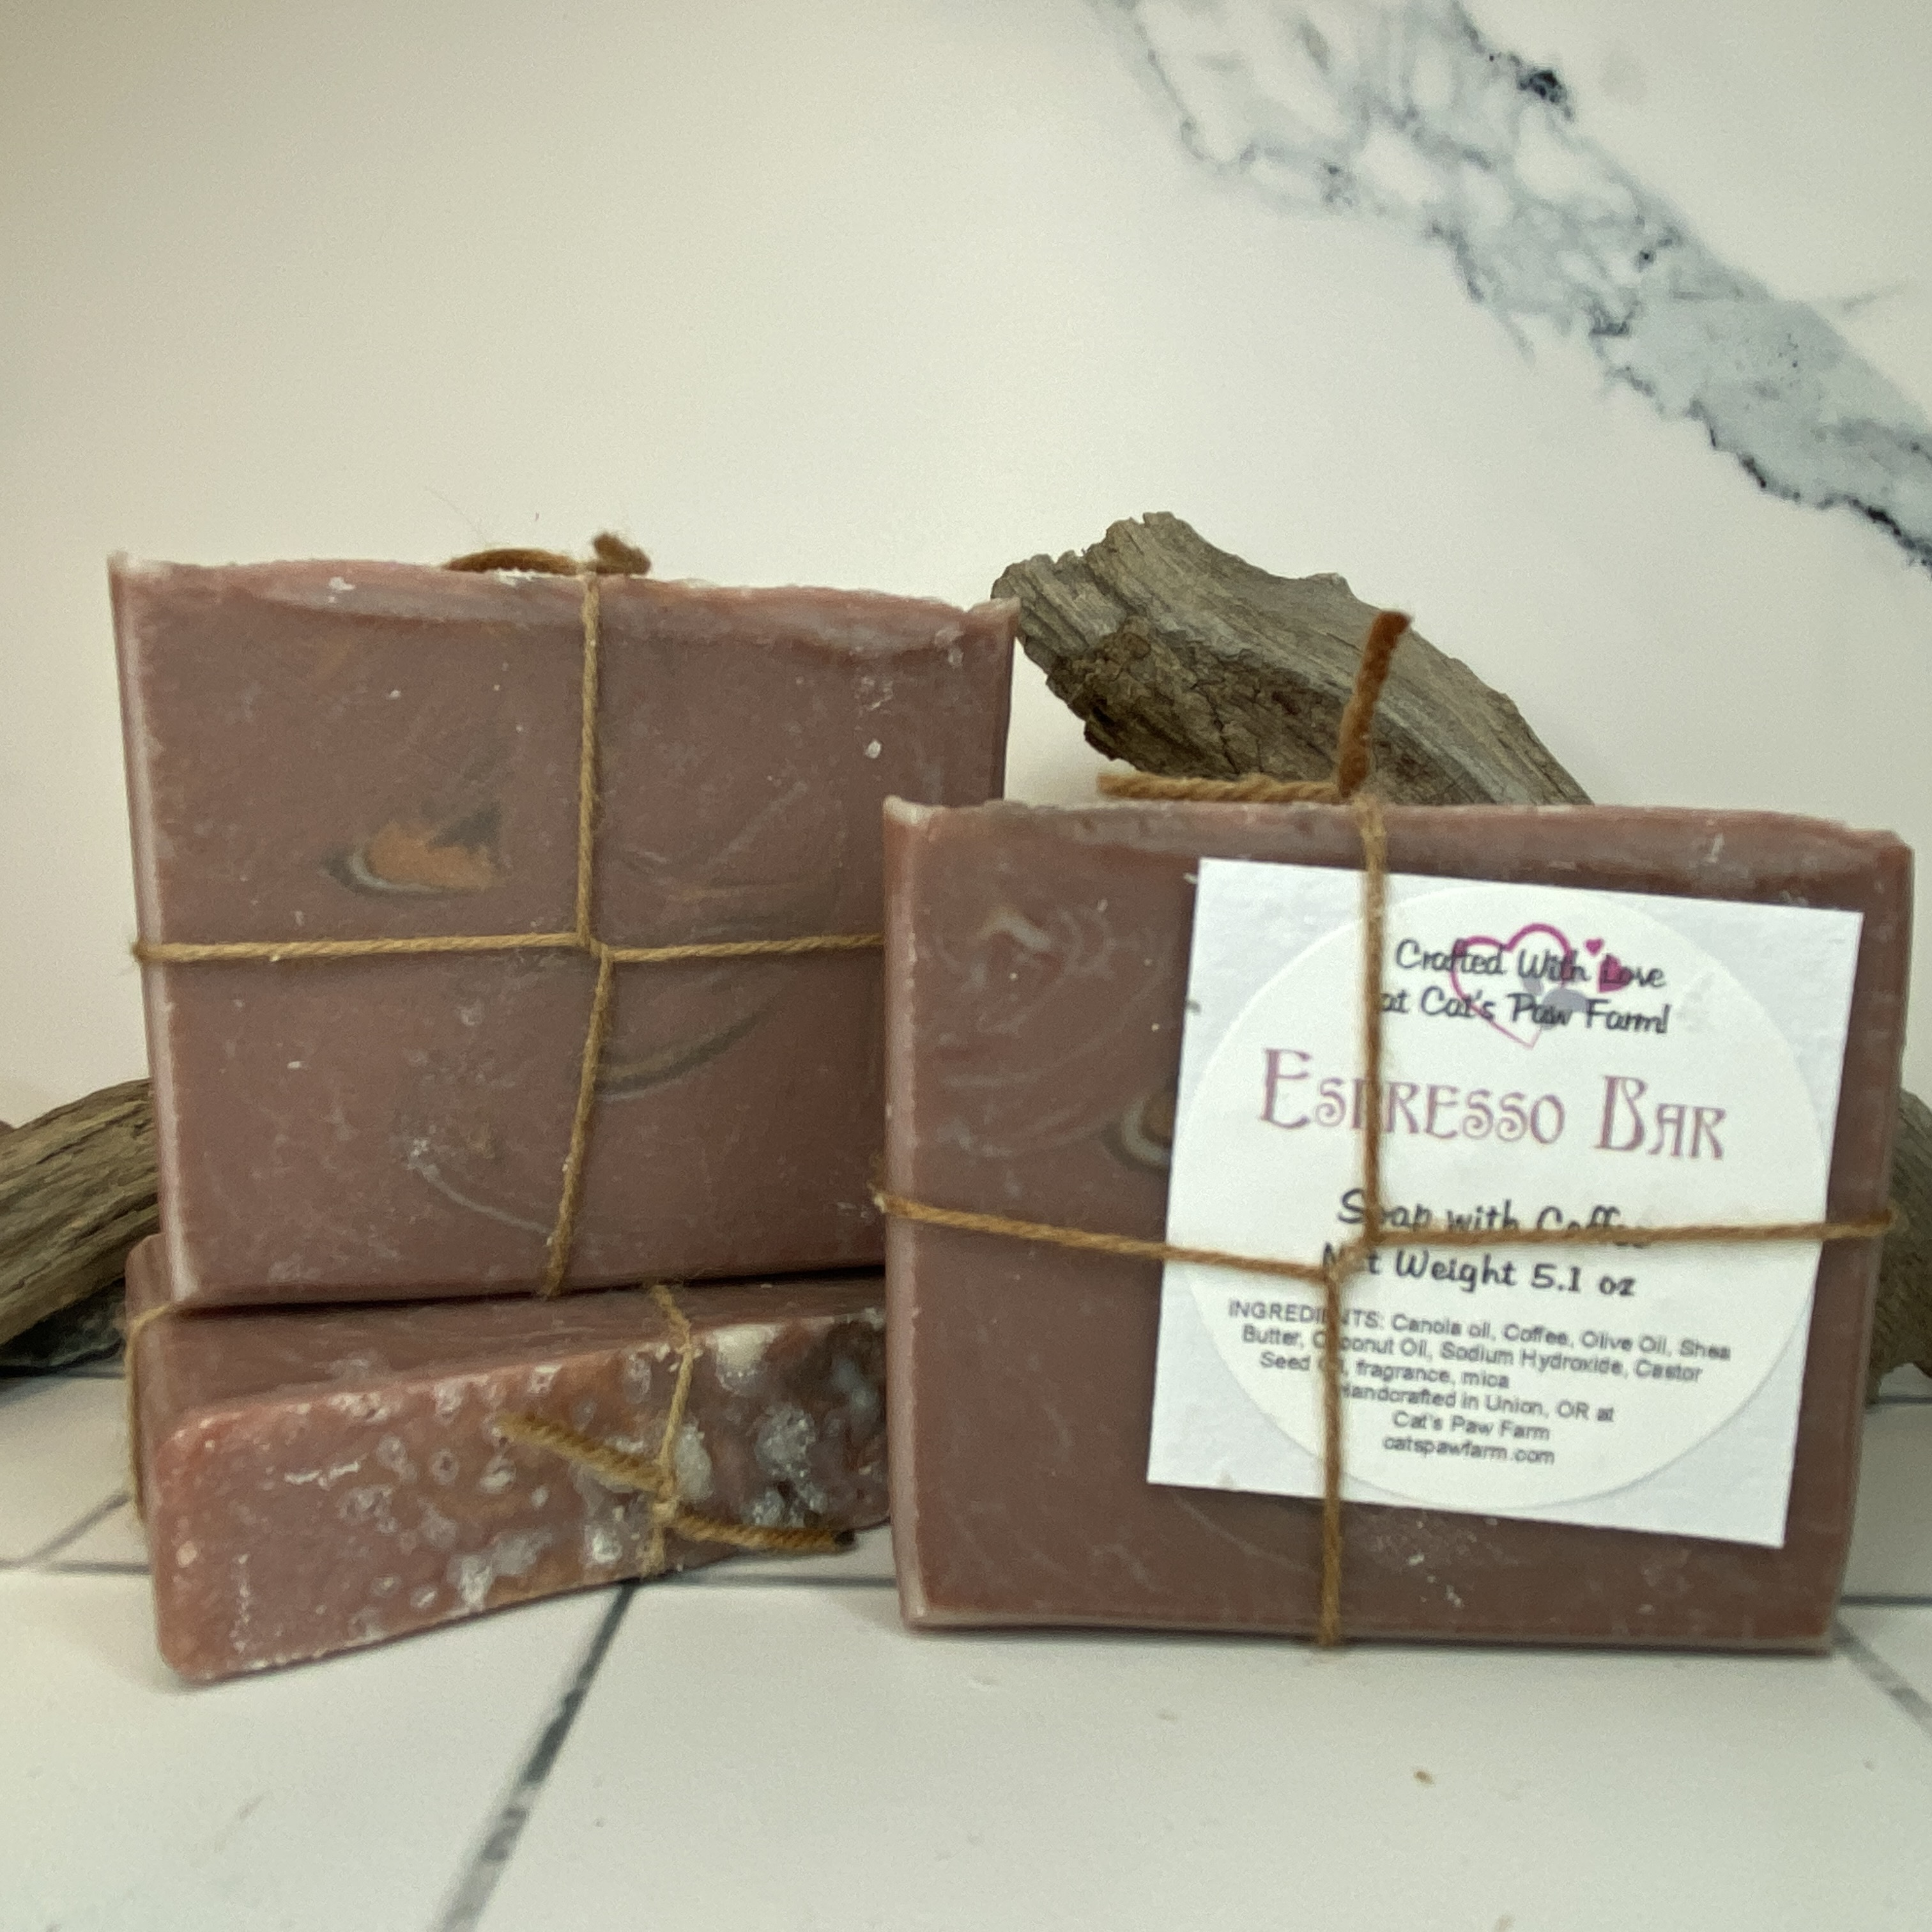 Espresso Scented Vegan Soap with Coffee